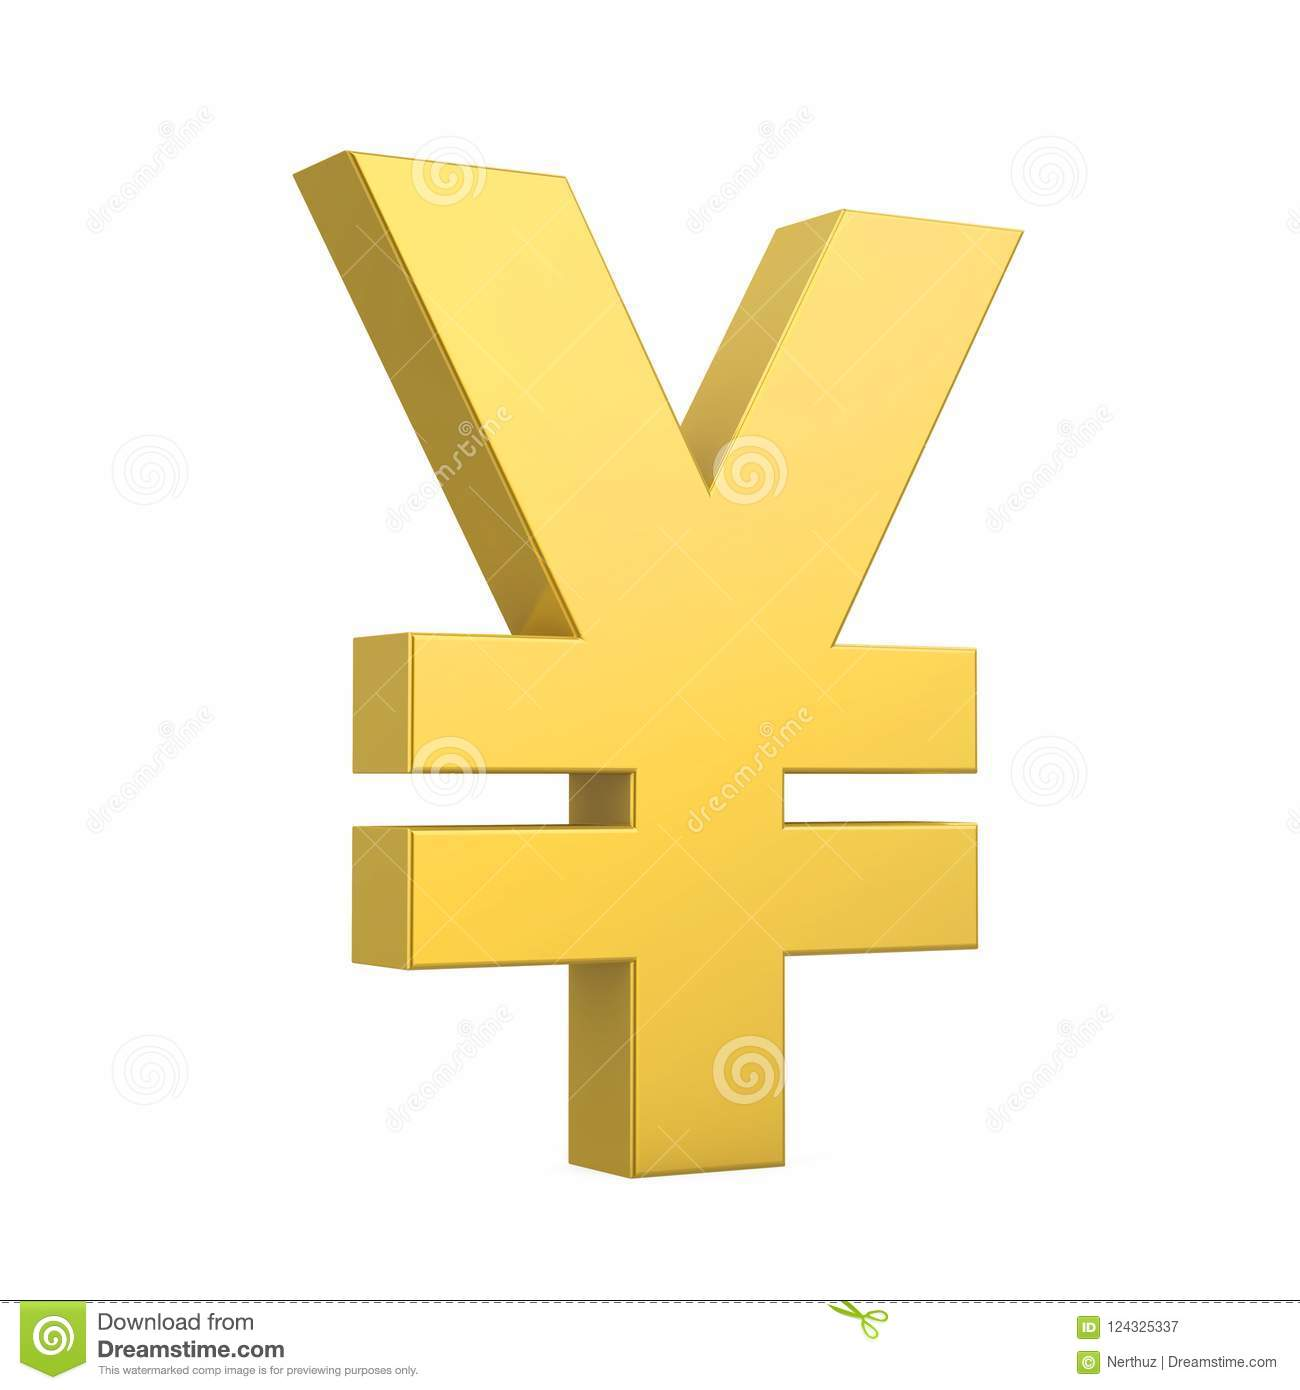 Yenes/Yuan Currency Sign Isolated